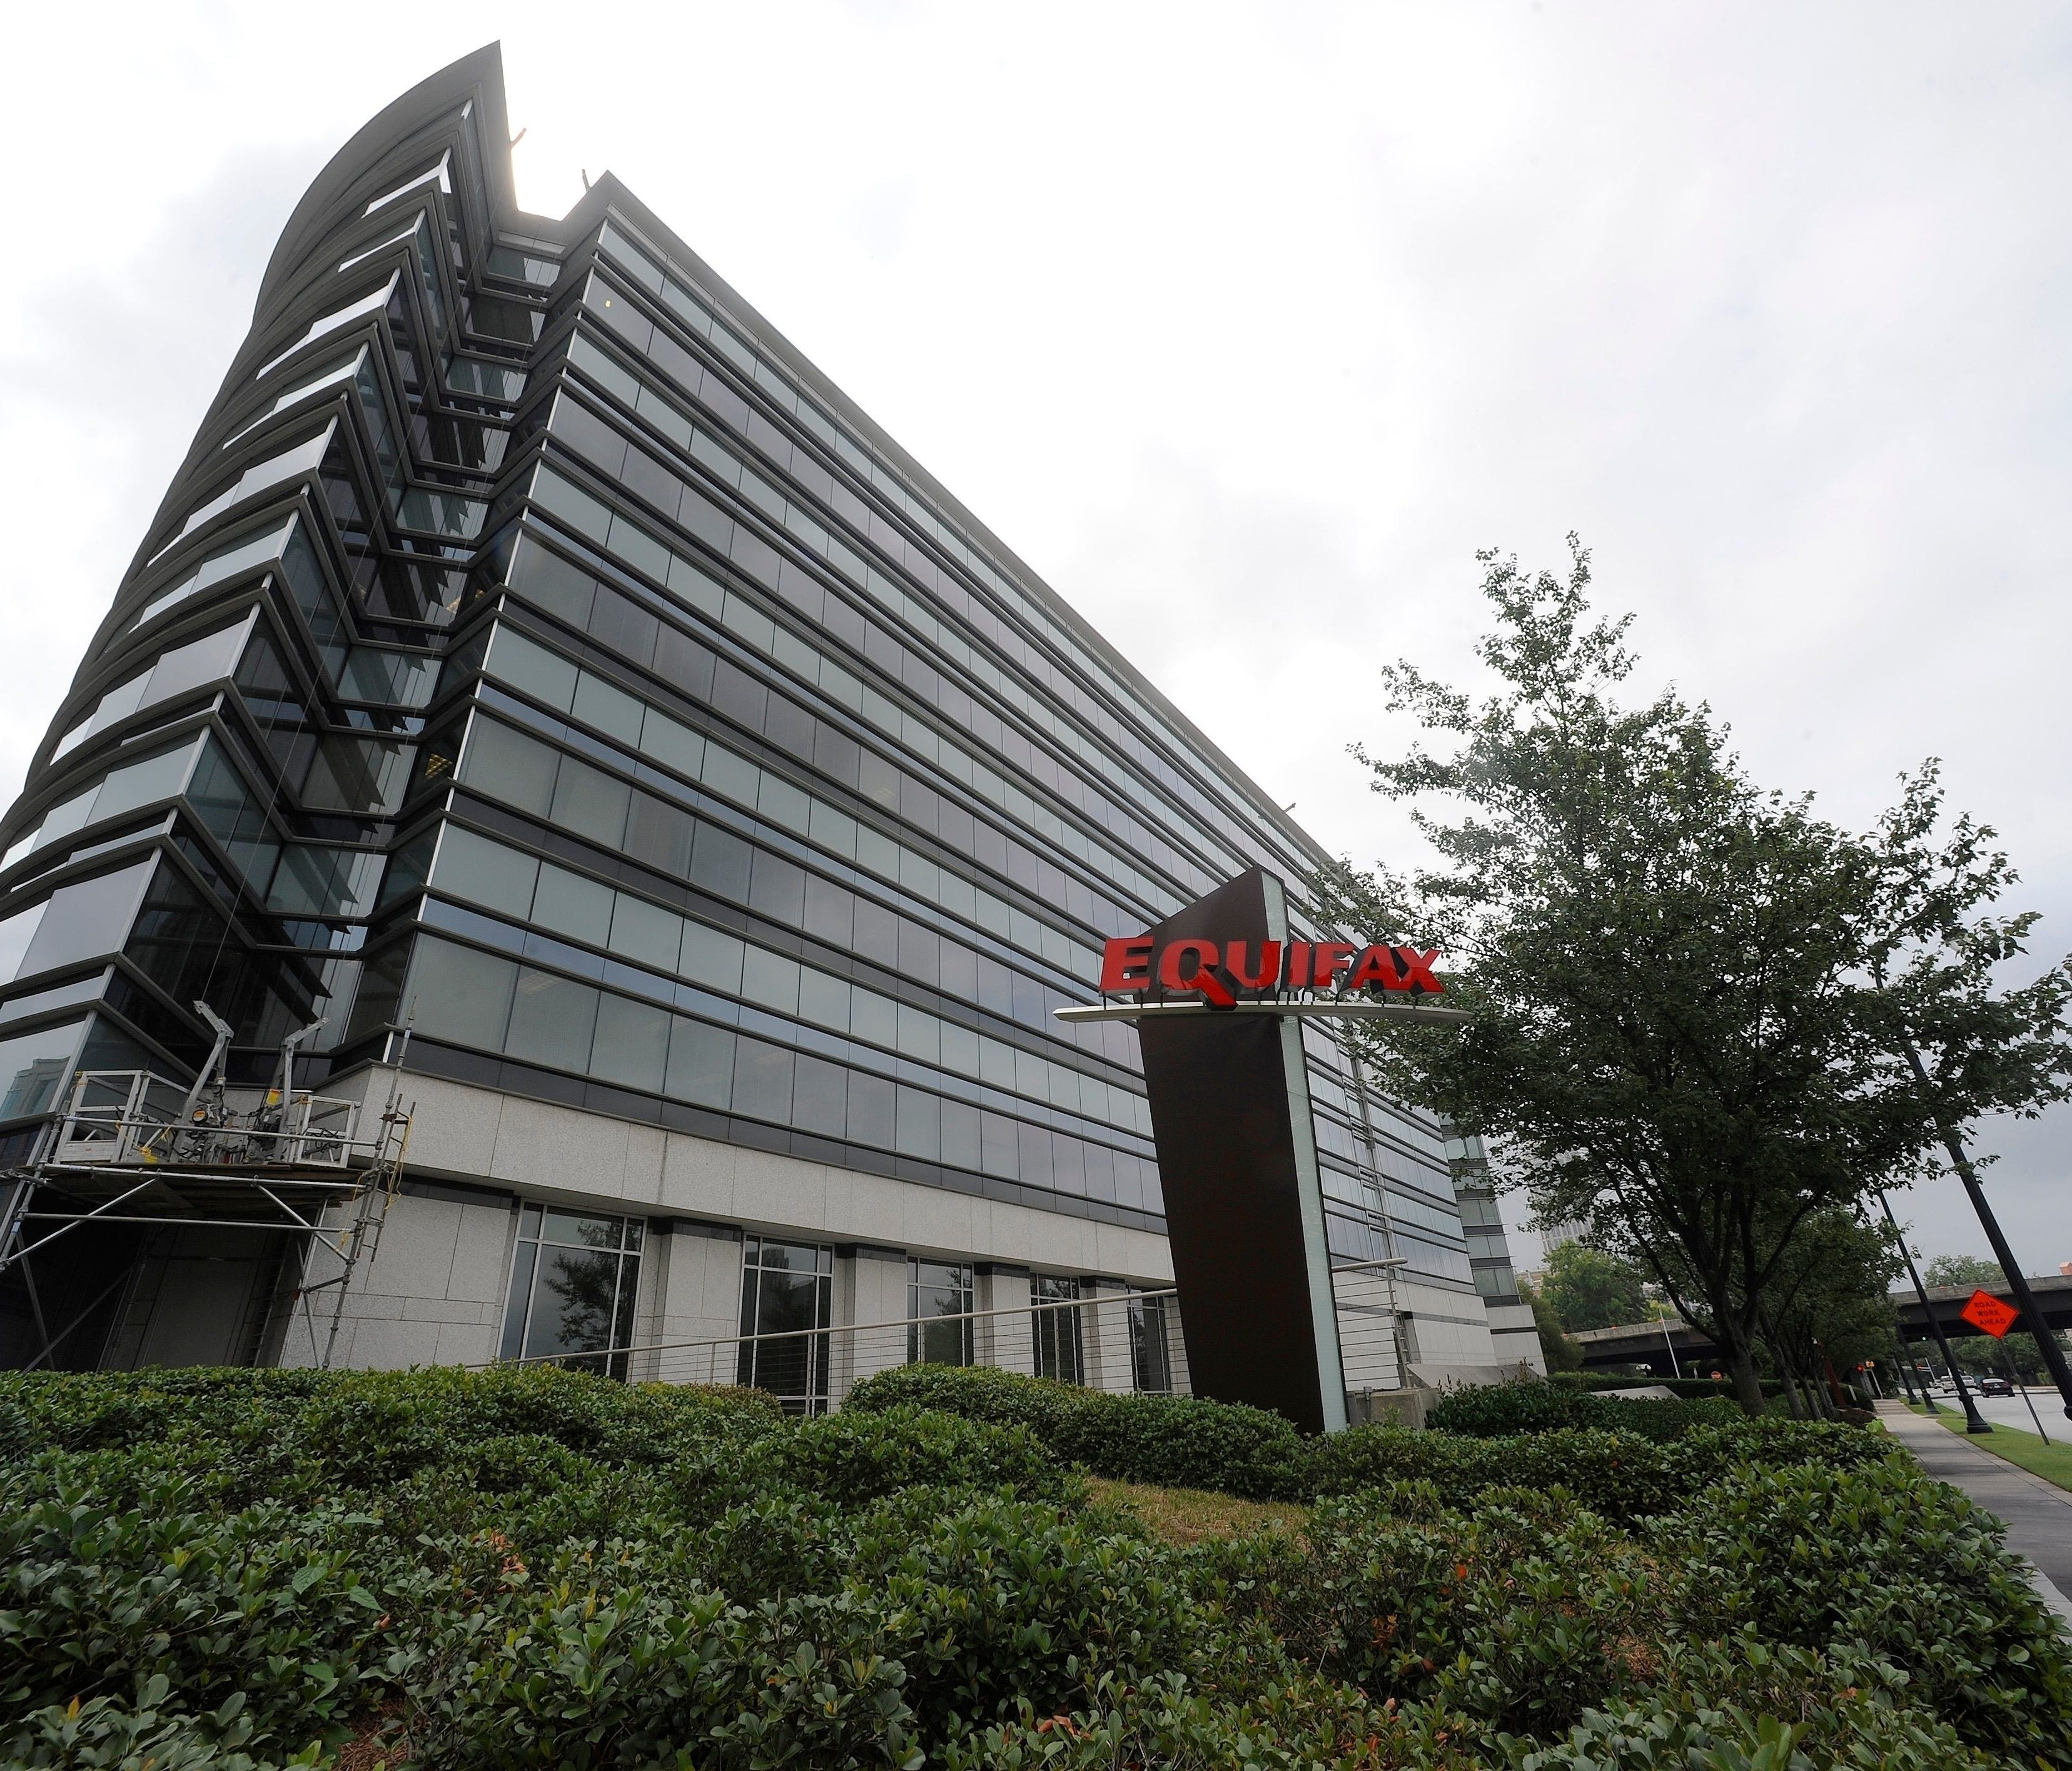 Consumers can still get a free credit freeze after the Equifax data breach was announced in September 2017. File photo: Shows the corporate headquarters of Equifax Inc. in Atlanta. Equifax knows a lot about you. That, in essence, is how it makes mone